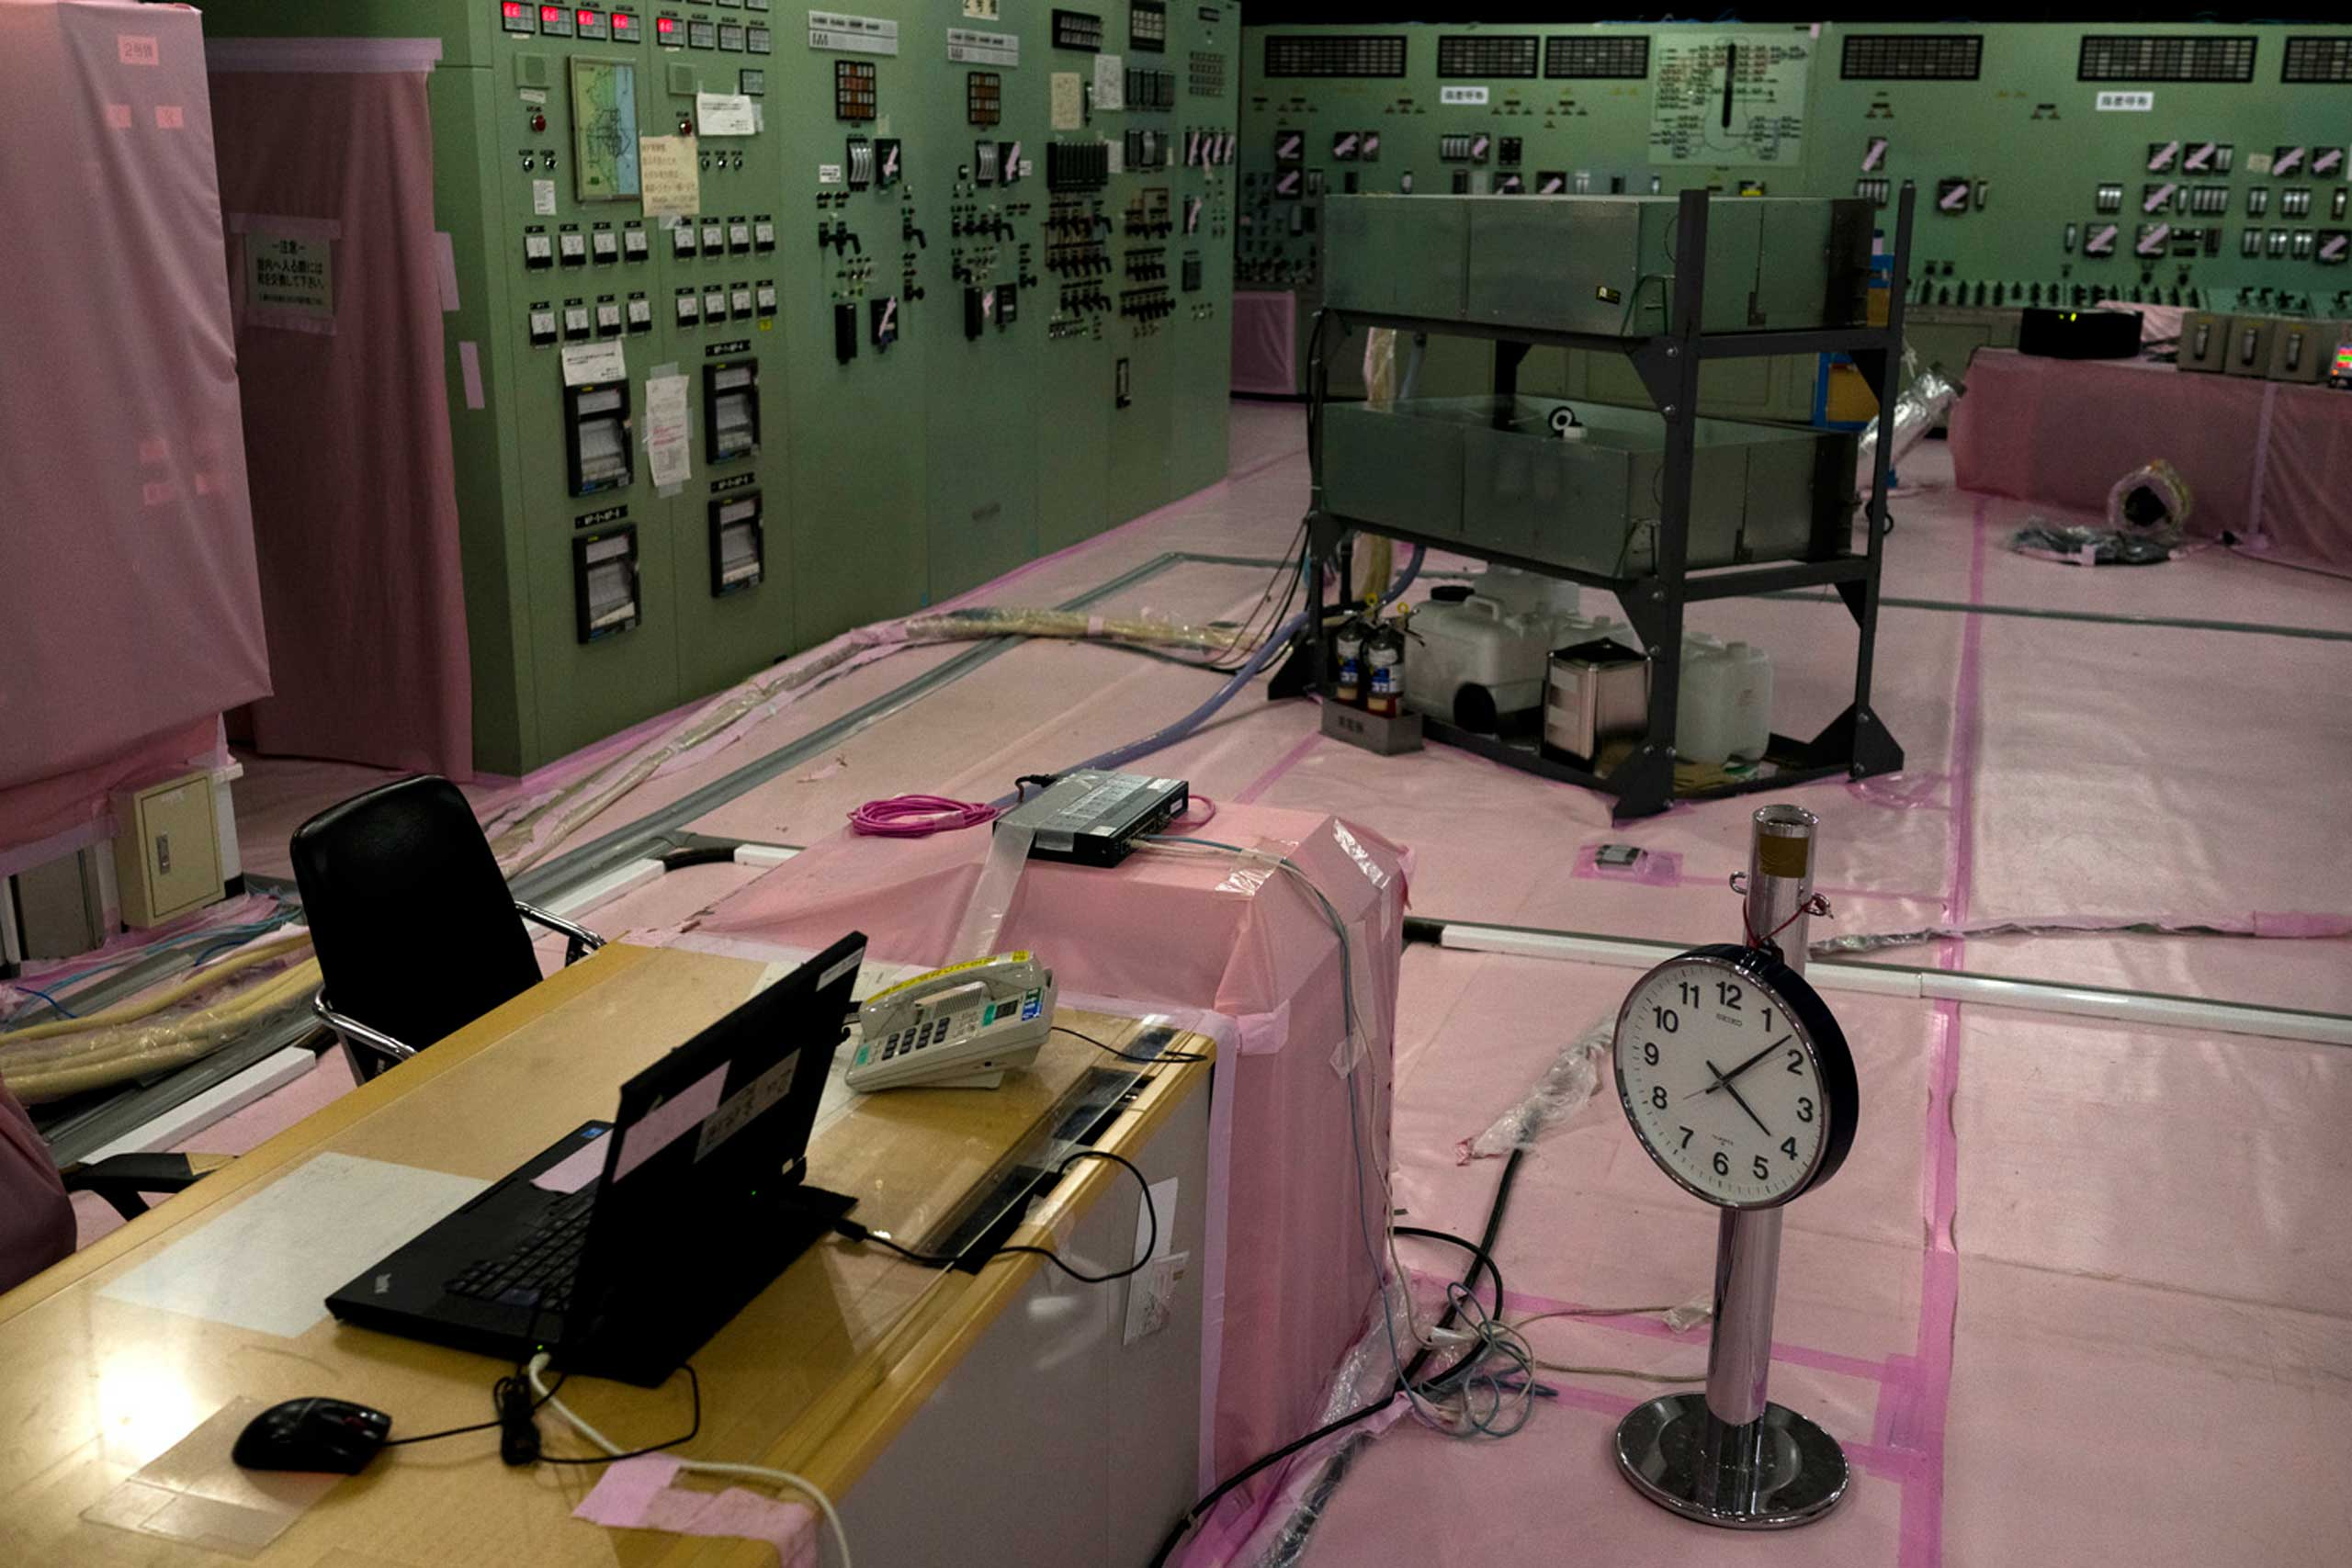 The abandoned control room for Reactors 1 and 2, both of which overheated and suffered meltdowns, Fukushima, Japan, June 3, 2014.